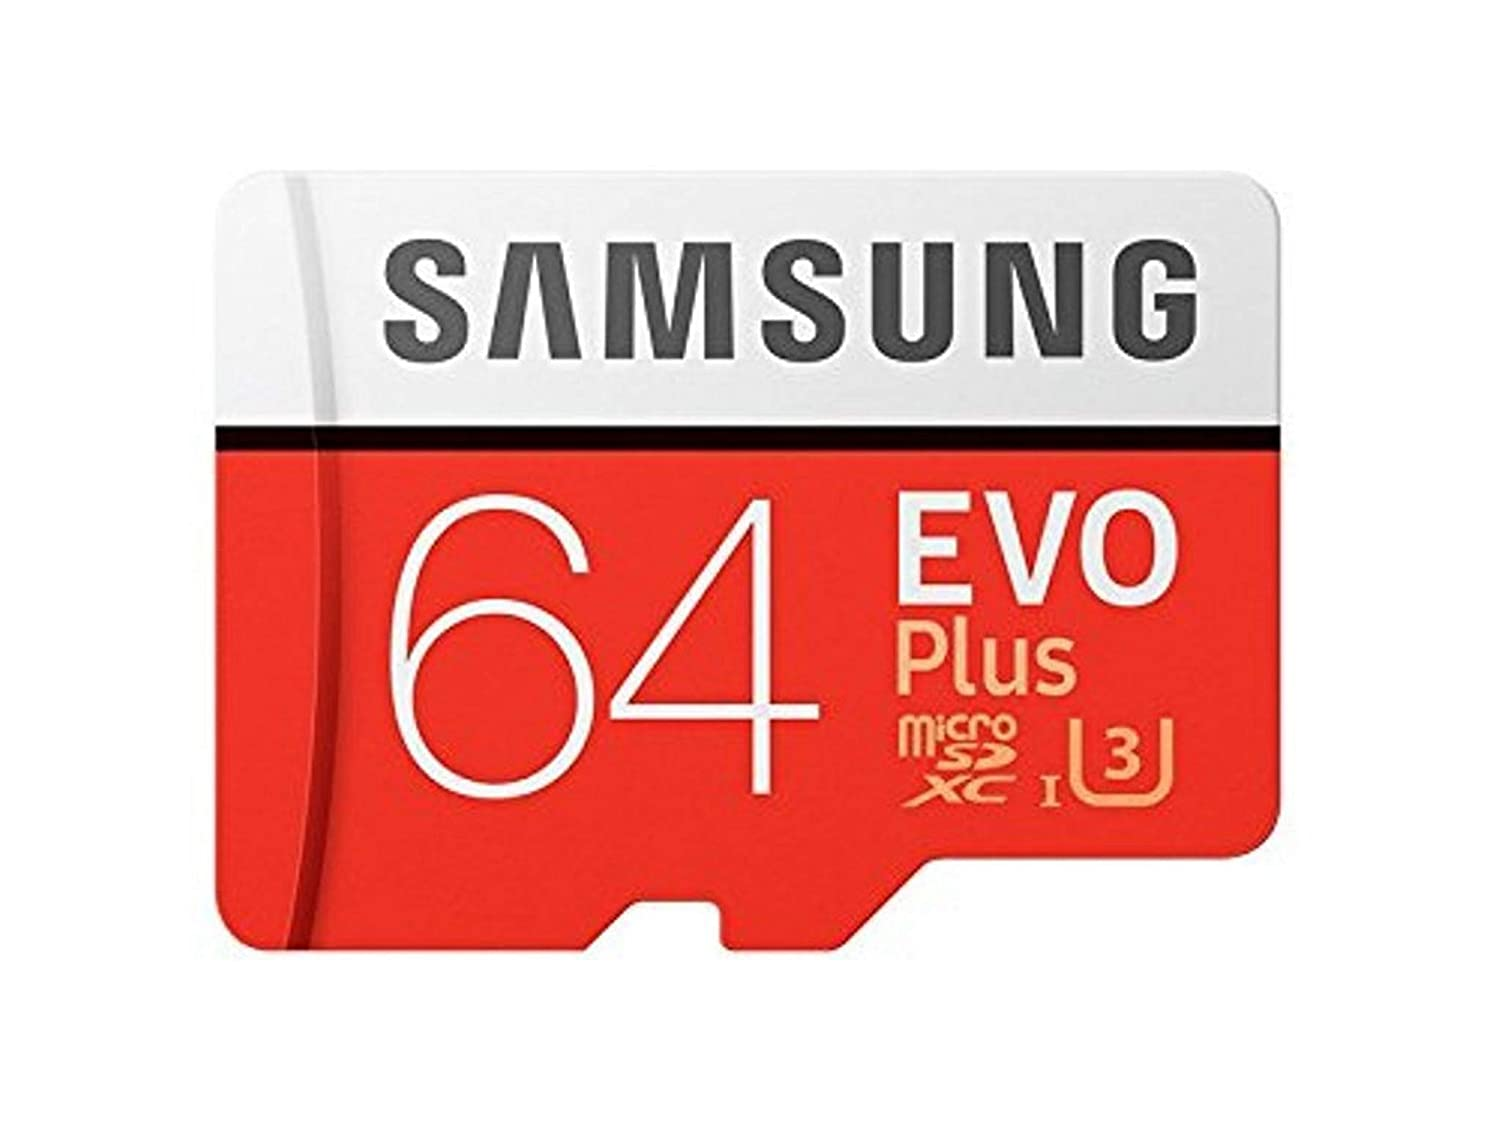 Samsung Evo Plus 64GB MicroSD XC Class 10 UHS-1 Mobile Memory Card for  Samsung Galaxy J3 J1 Nxt Ace A9 A7 A5 A3 Tab A 7 0 E 8 0 View On7 On5 Z3